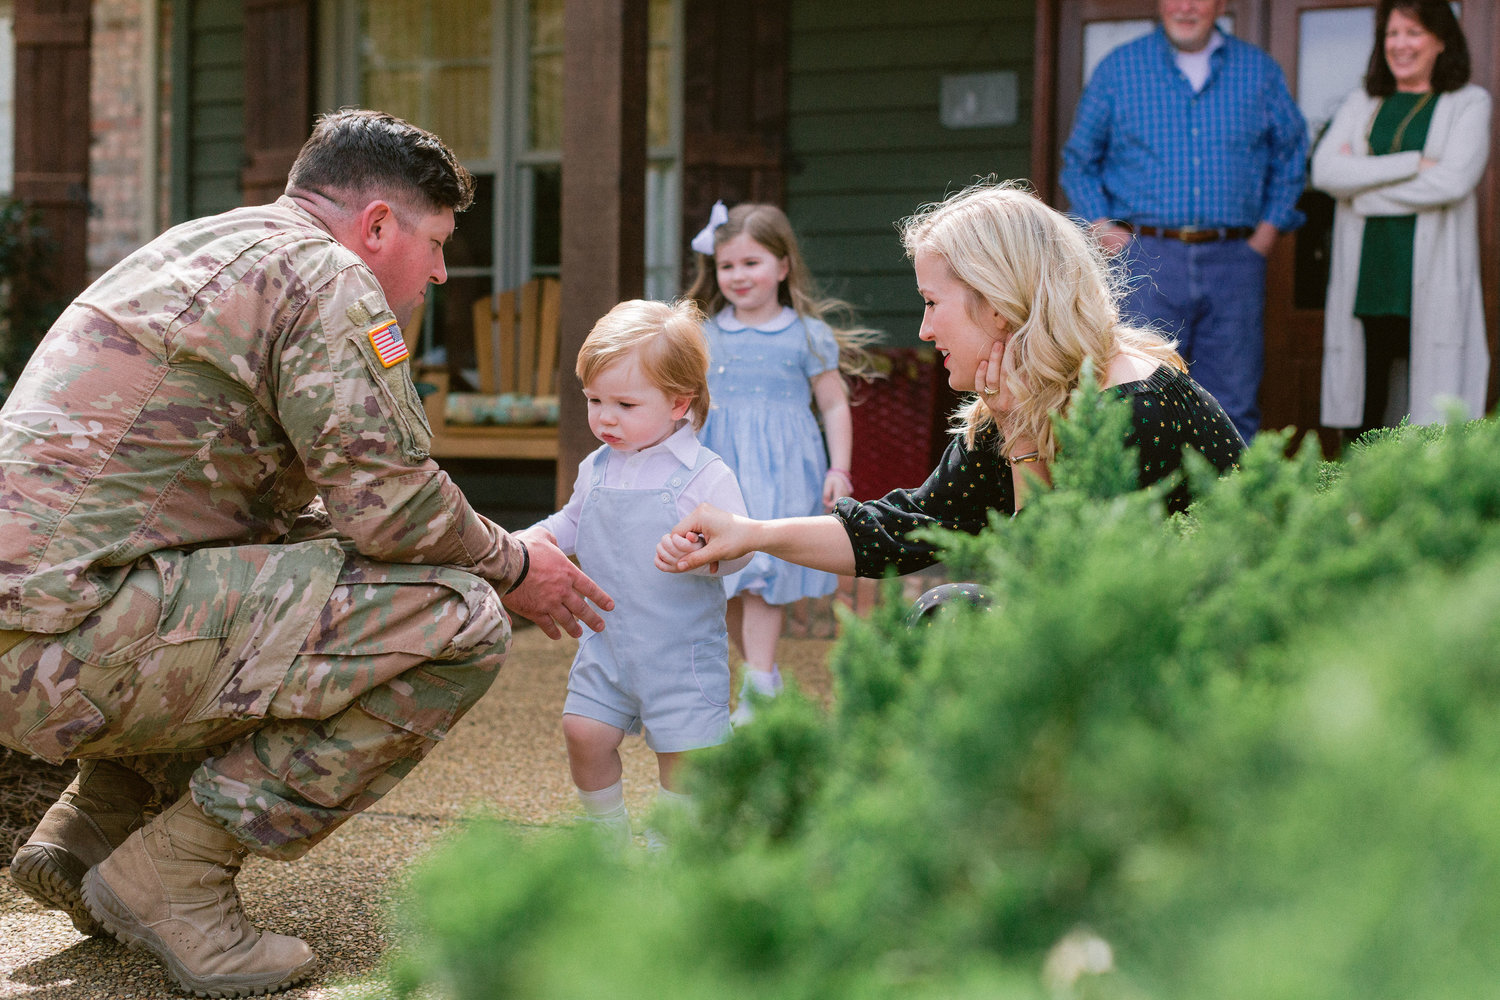 Harper Solop, left, prepares to pick up son, Wilder, after a 13-month deployment in the Middle East. Looking on are wife Sarah Beth Solop and daughter Ava. A short that will be filmed in Canton this month will focus on Sarah Beth's time as a military wife.